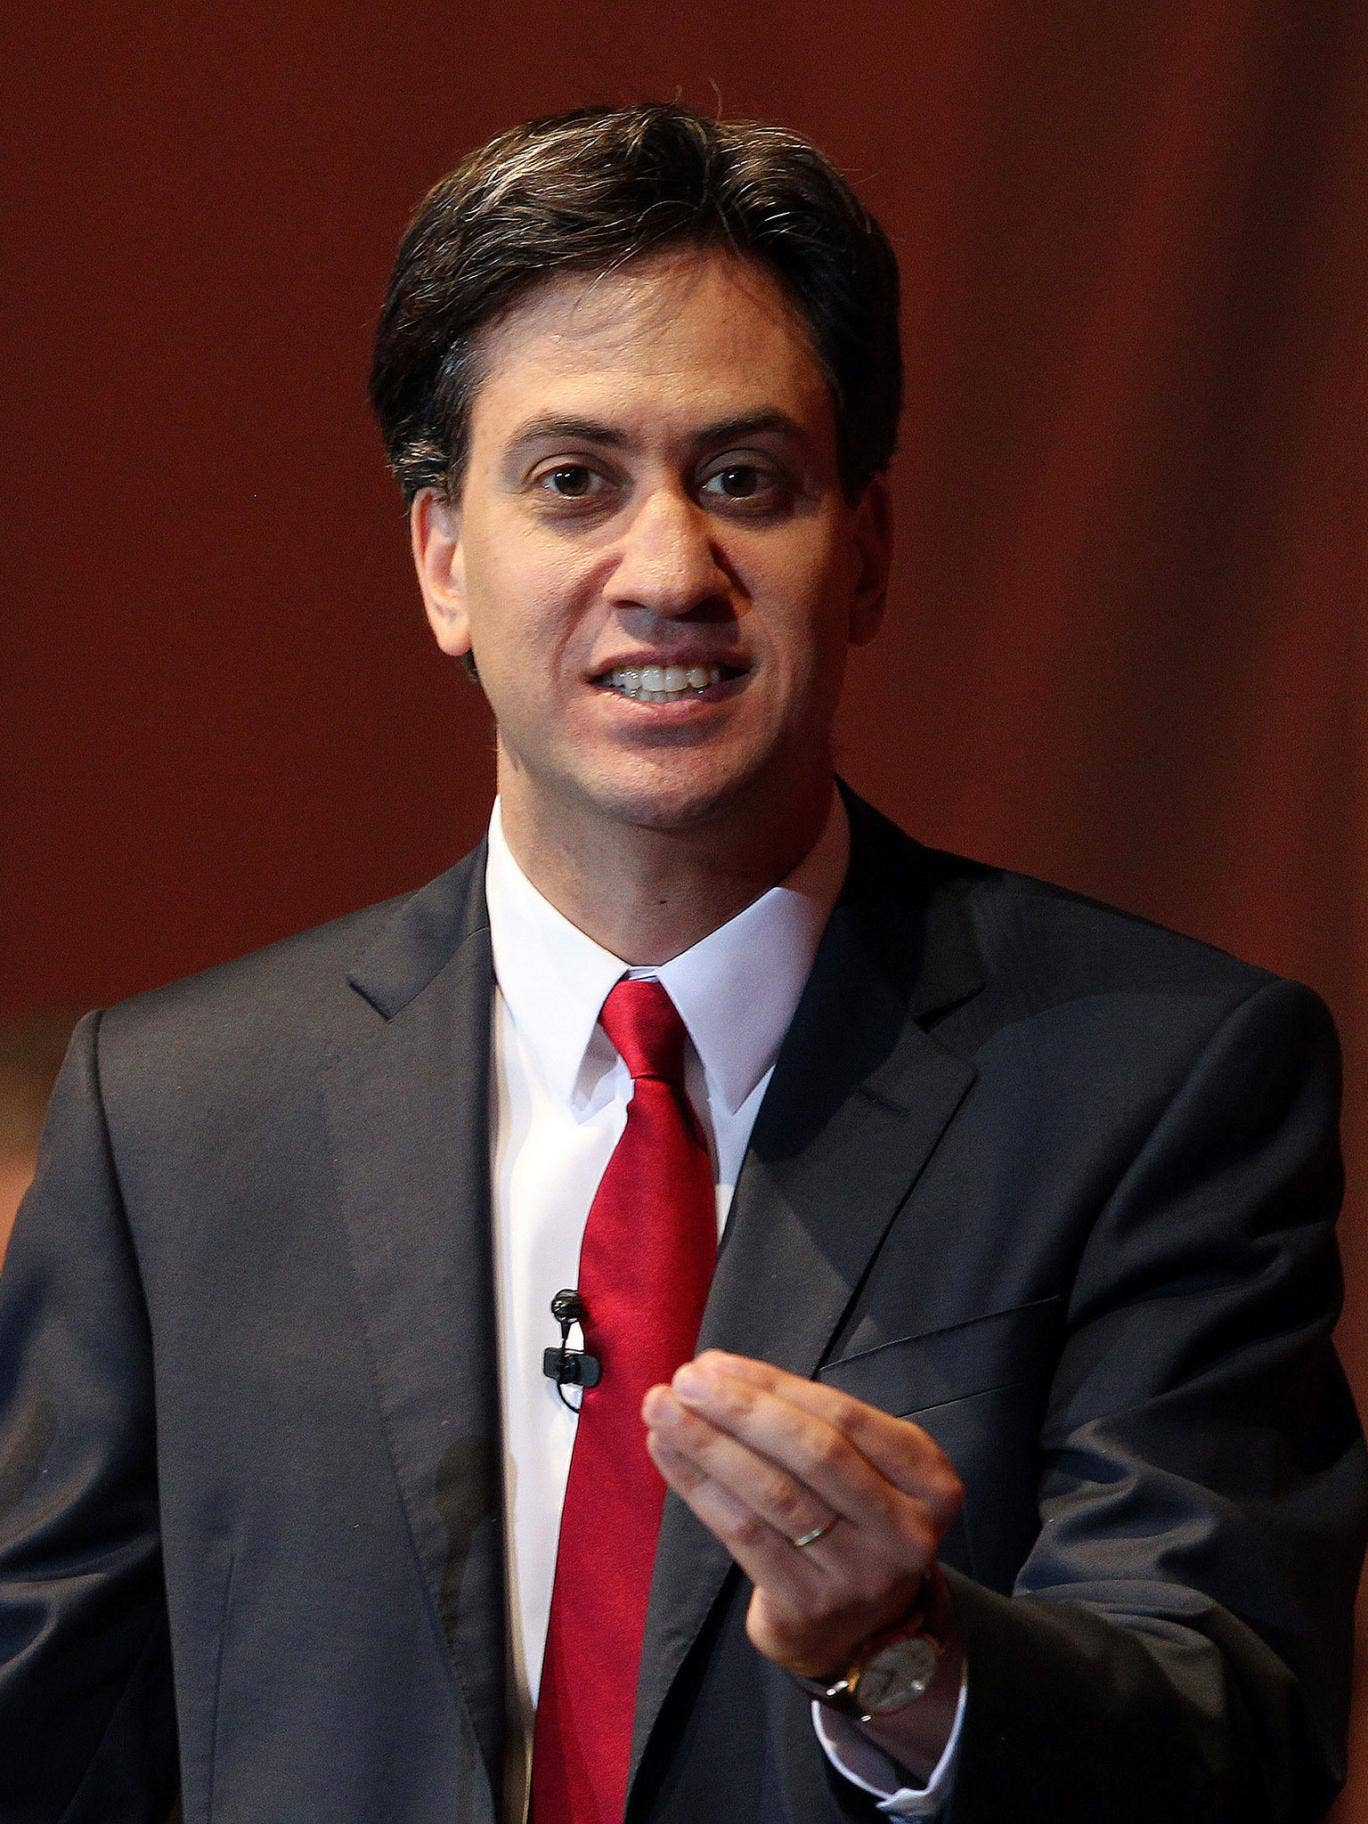 Labour will make a fresh attempt to switch attention from Ed Miliband's leadership as it sets out plans to lower the tax burden on business and industry